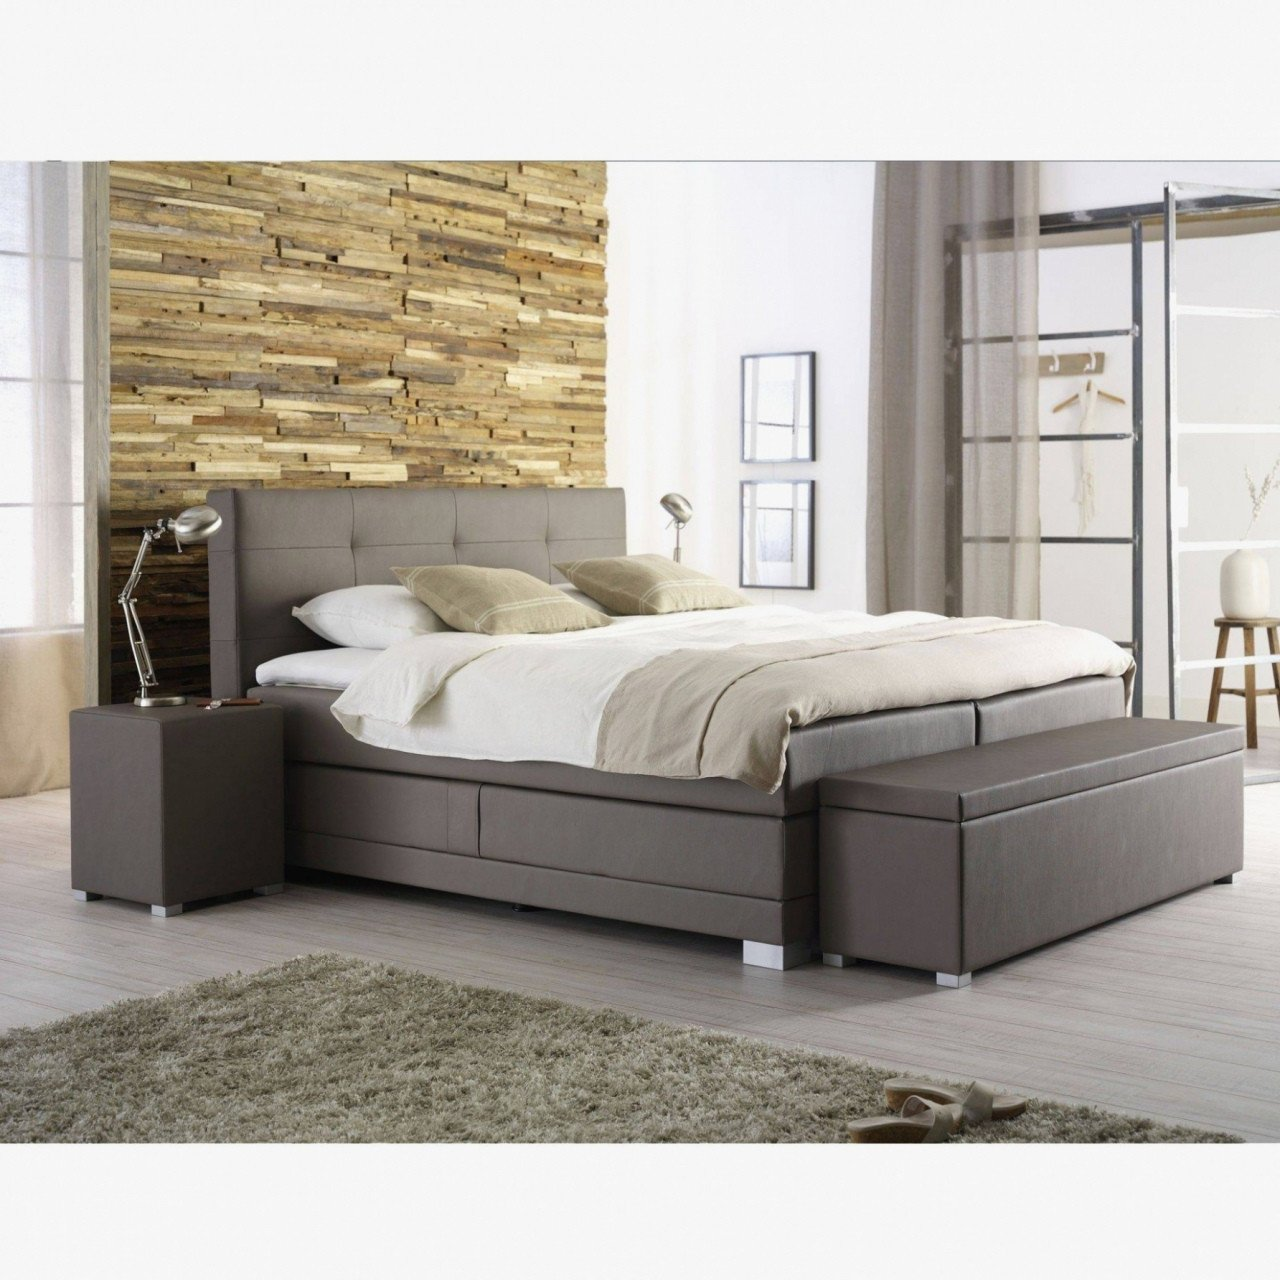 Ikea Bedroom Furniture Set Awesome Bed with Drawers Under — Procura Home Blog